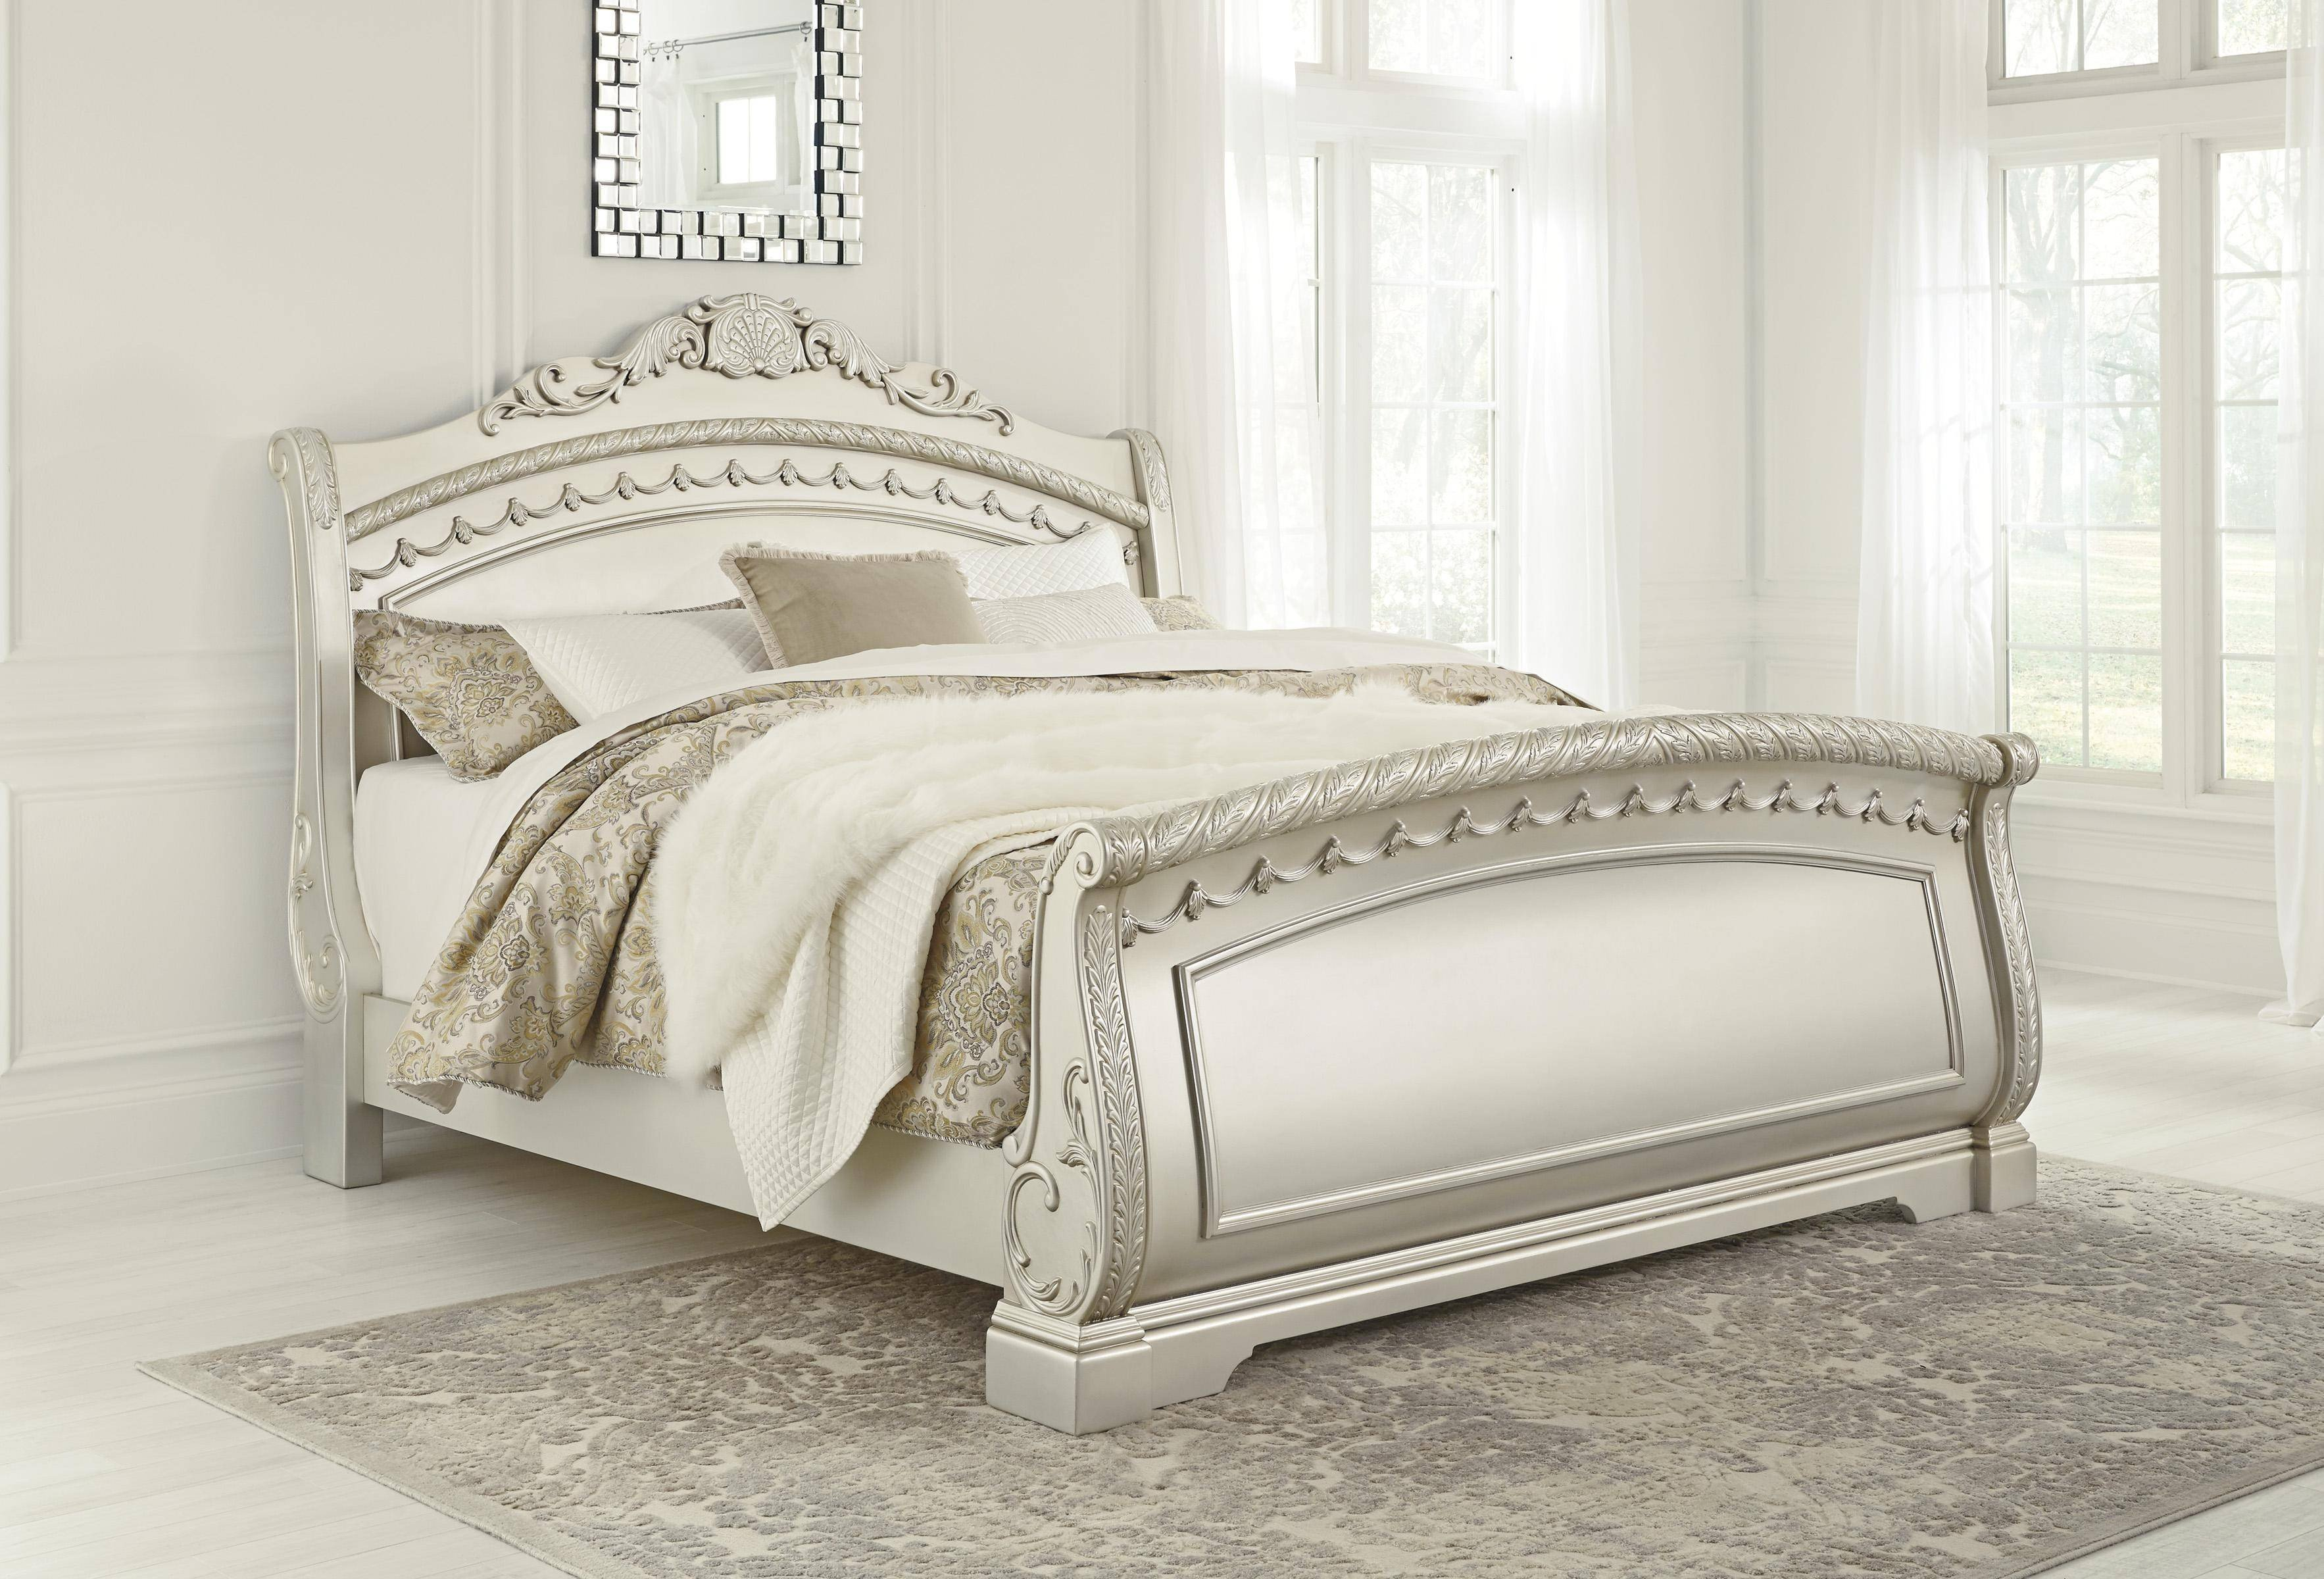 Ashley Furniture Silver Bedroom Set Inspirational ashley Cassimore B750 Queen Size Sleigh Bedroom Set 5pcs In